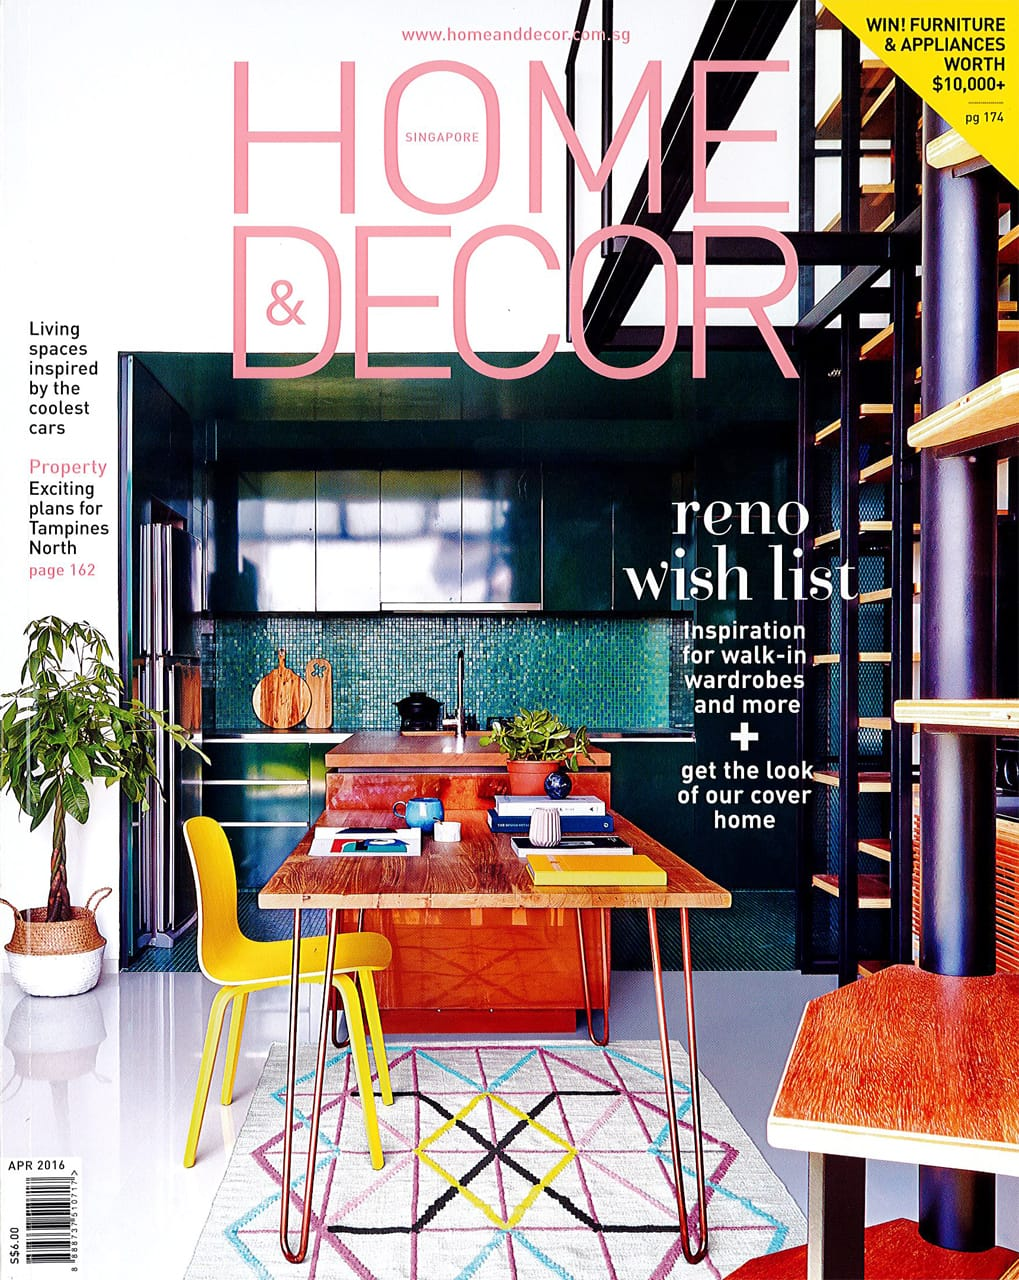 Home & Decor - April 2016